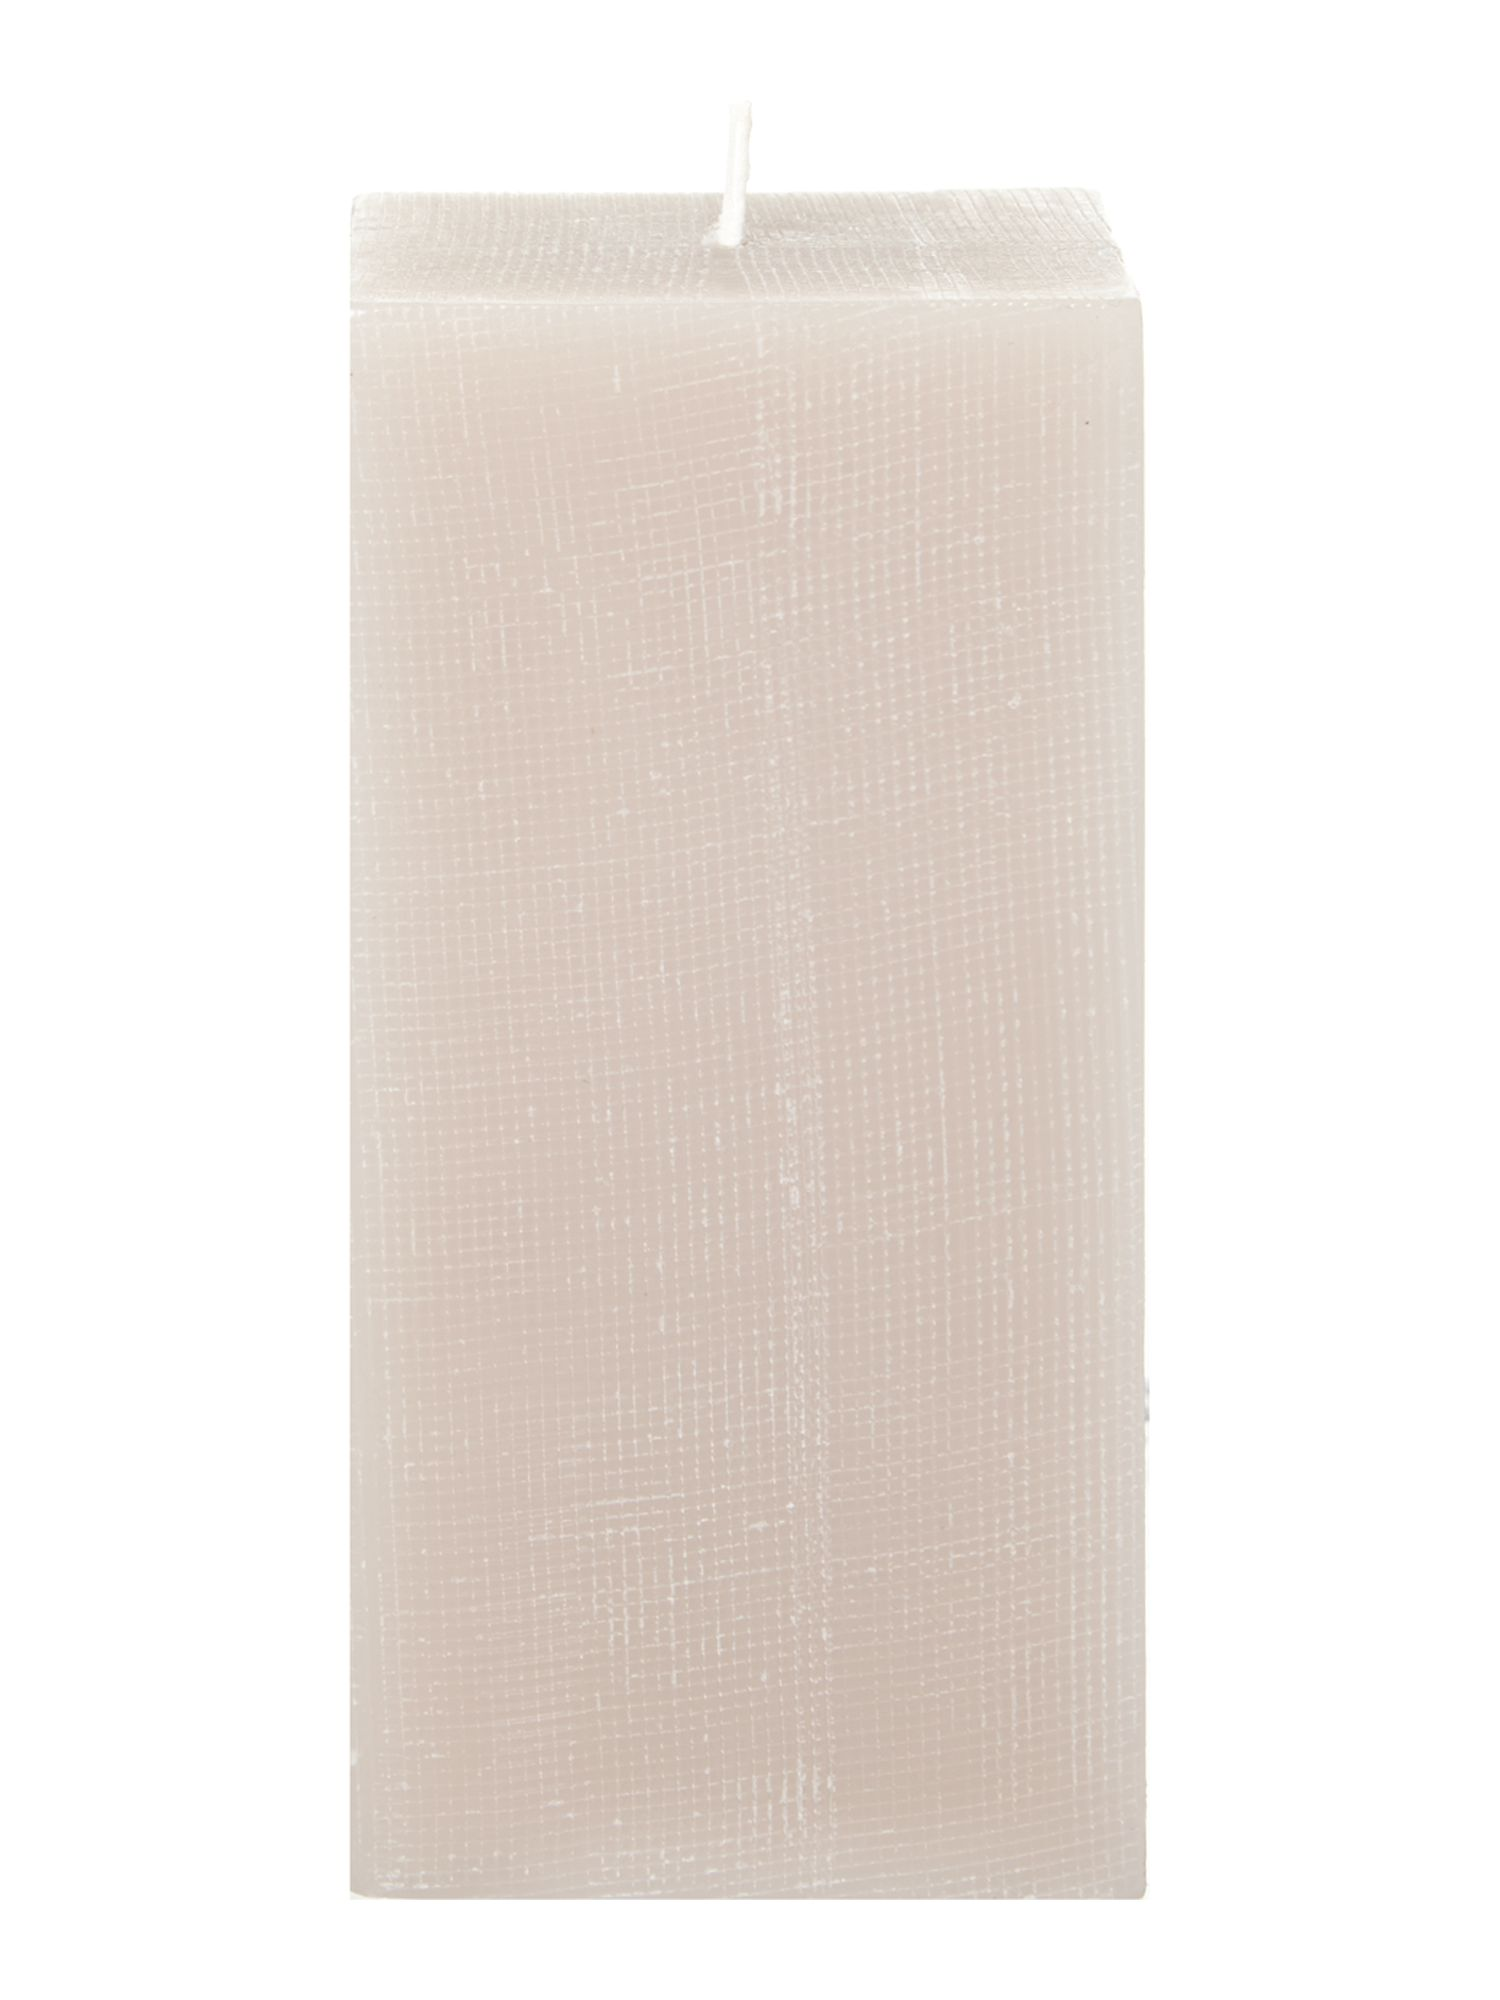 Calm grid pillar candle